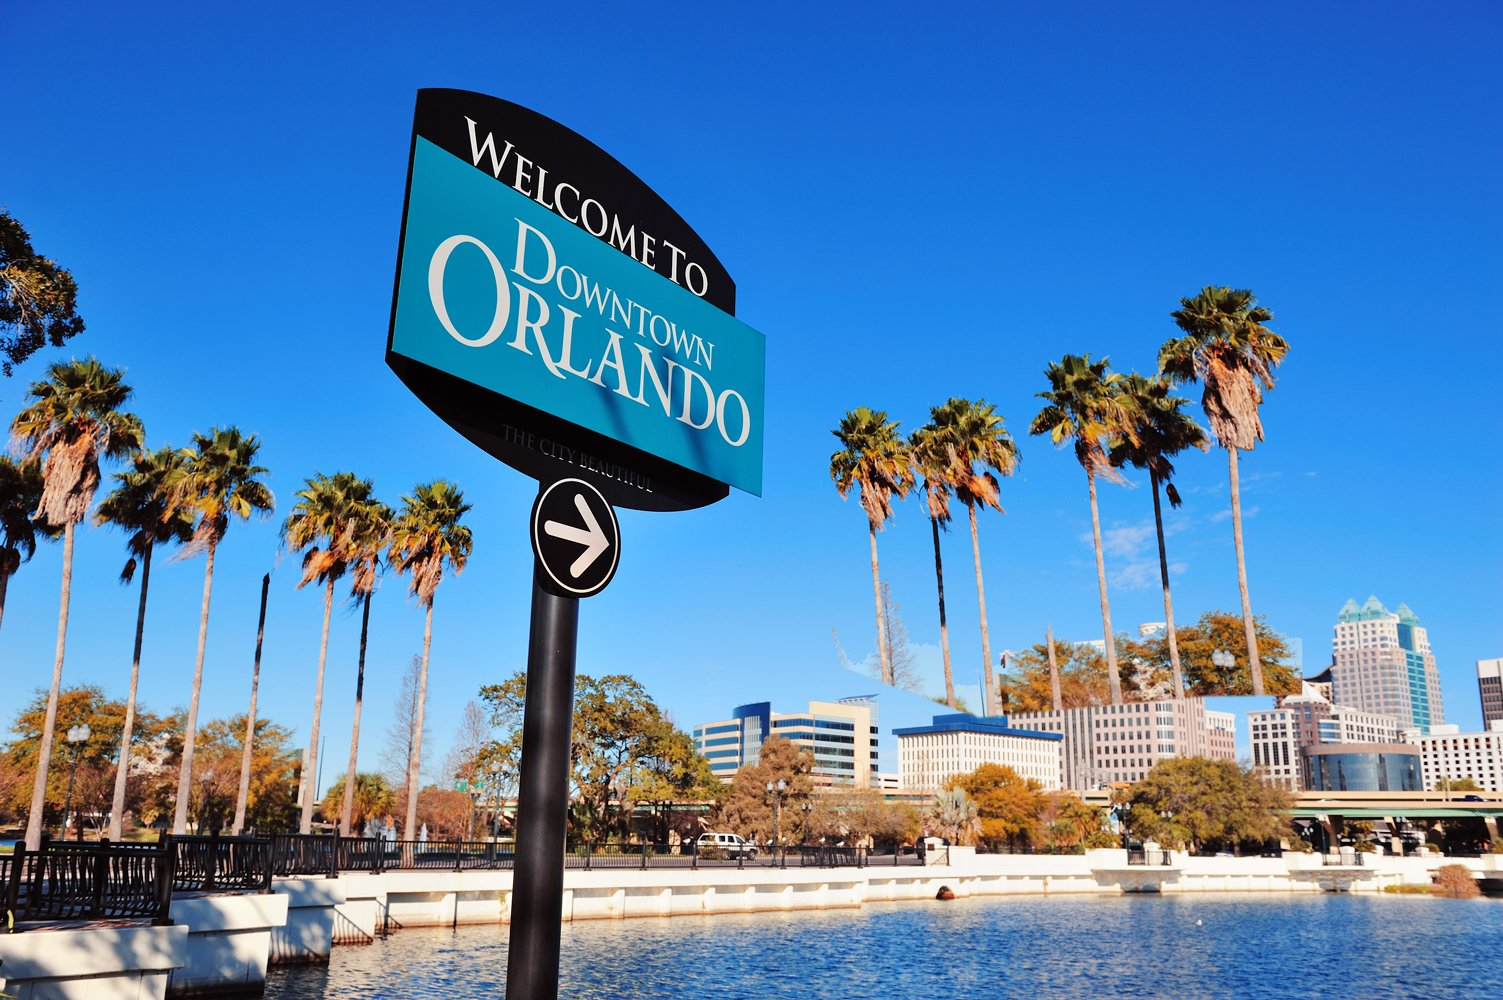 7-Day Orlando Theme Park Classic Tour from Orlando (Included 5 Theme Parks Tickets)